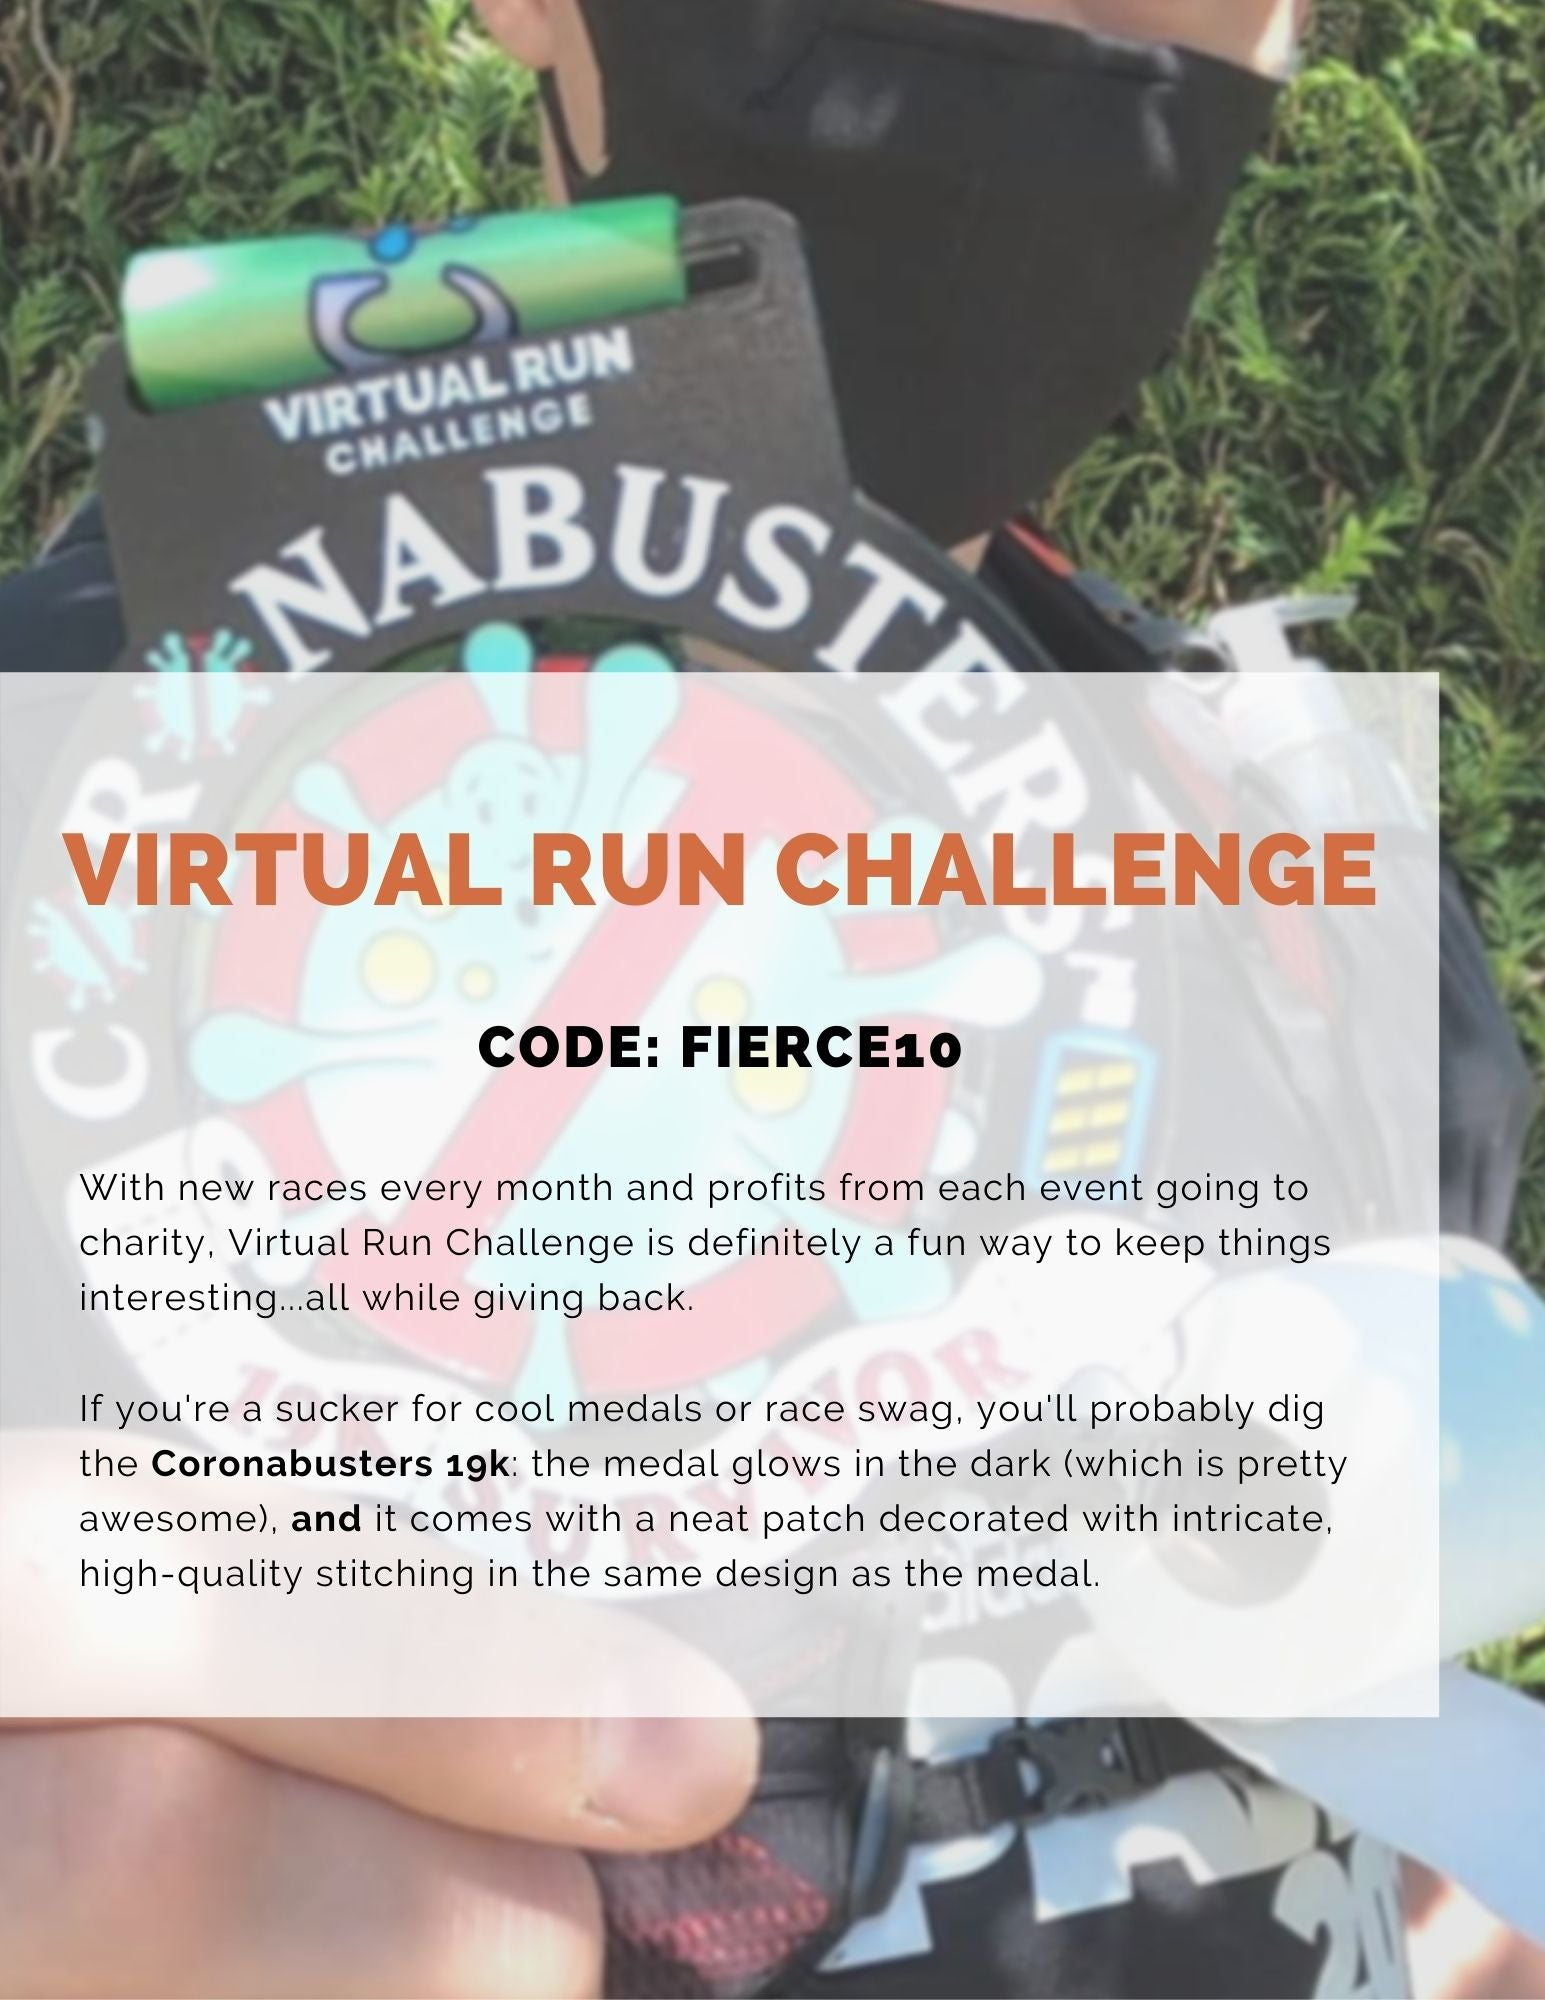 Virtual Run Challenge virtual races and events